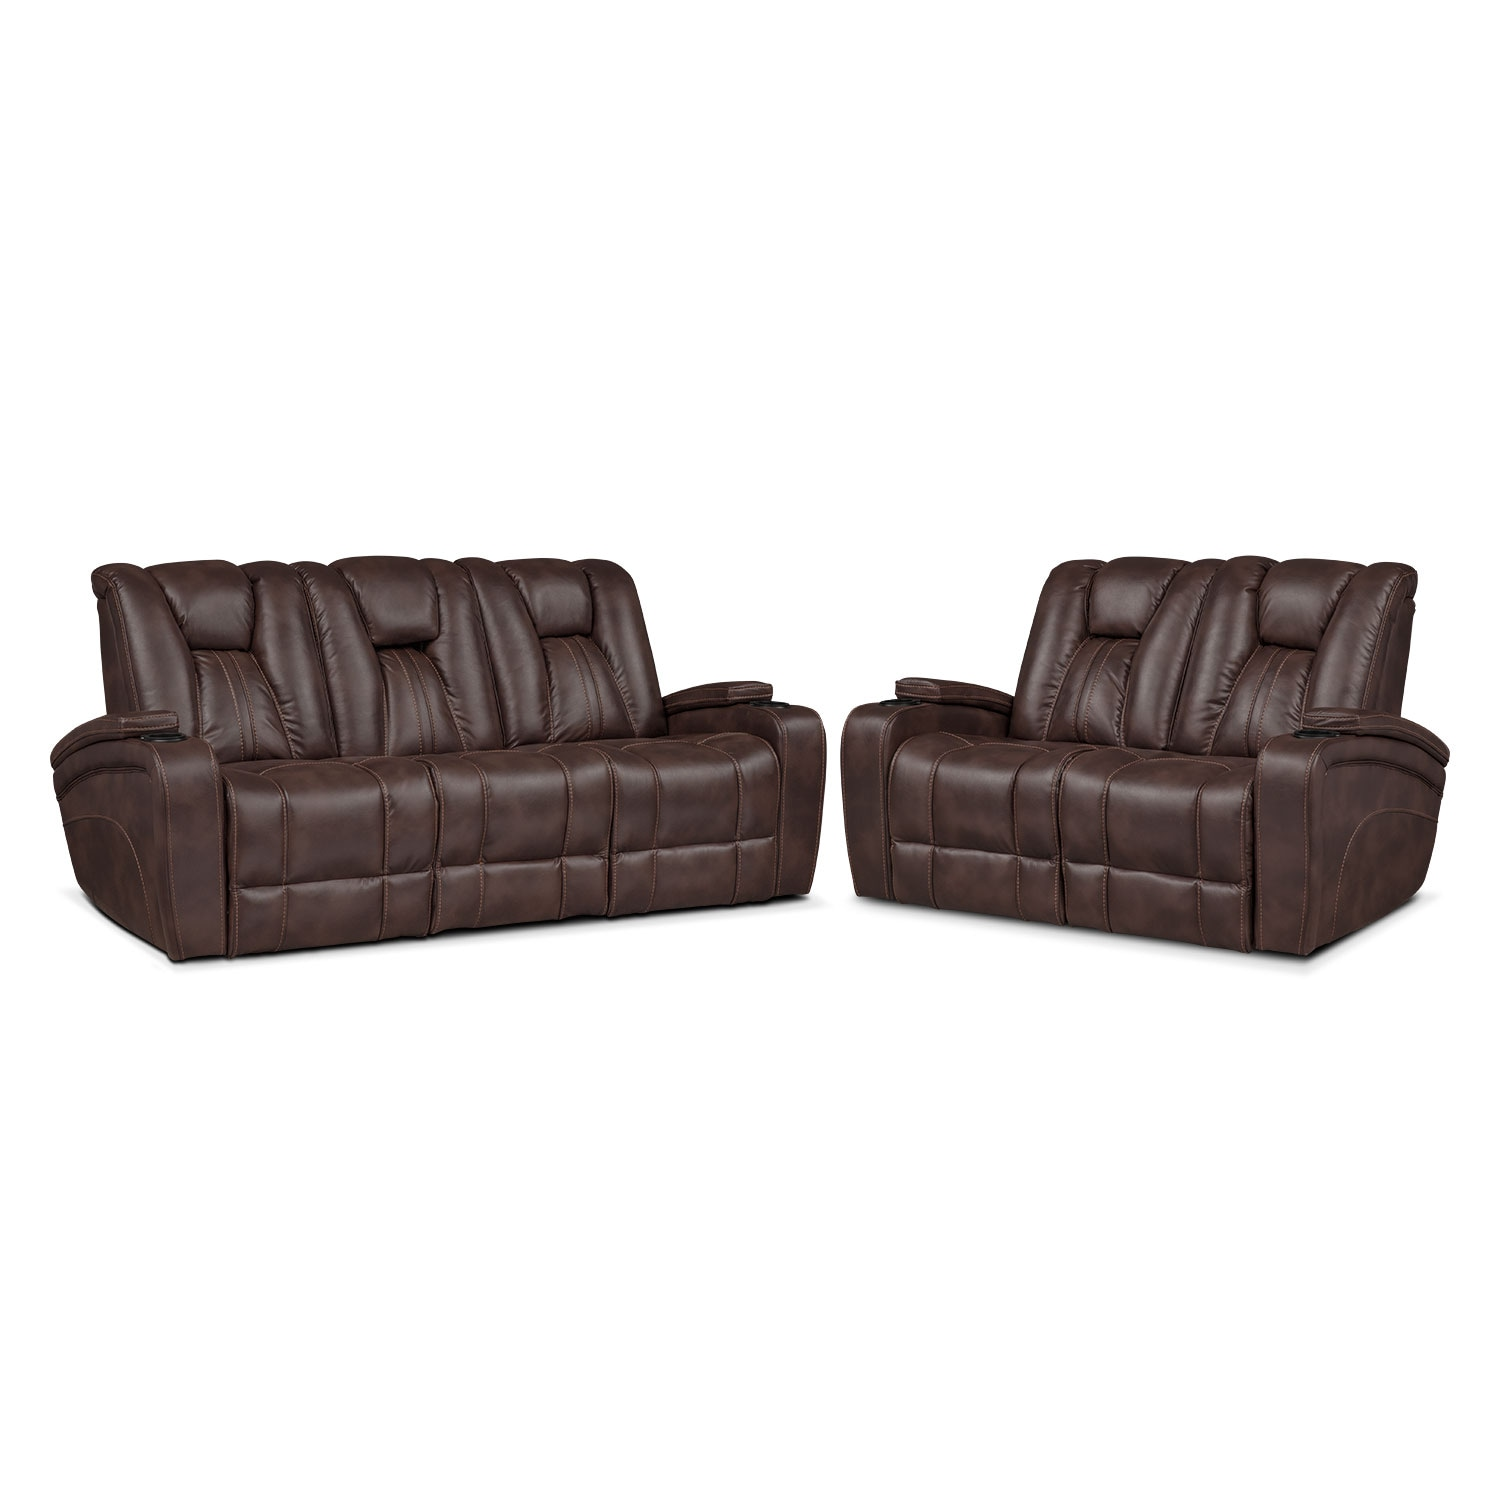 Pulsar Dual Power Reclining Sofa And Dual Power Reclining